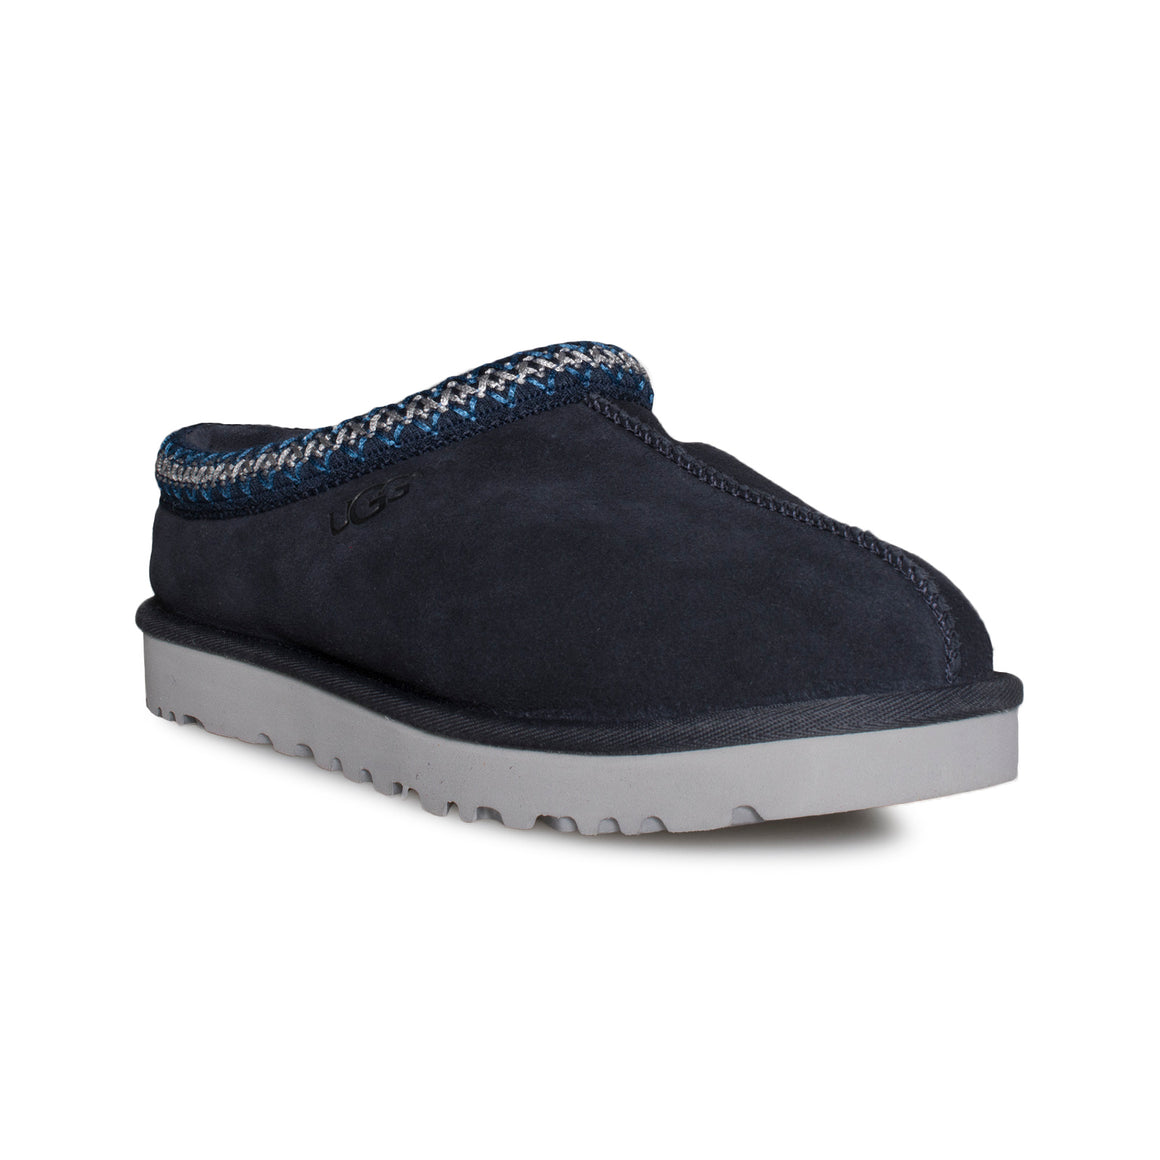 UGG Tasman True Navy Slippers - Men's